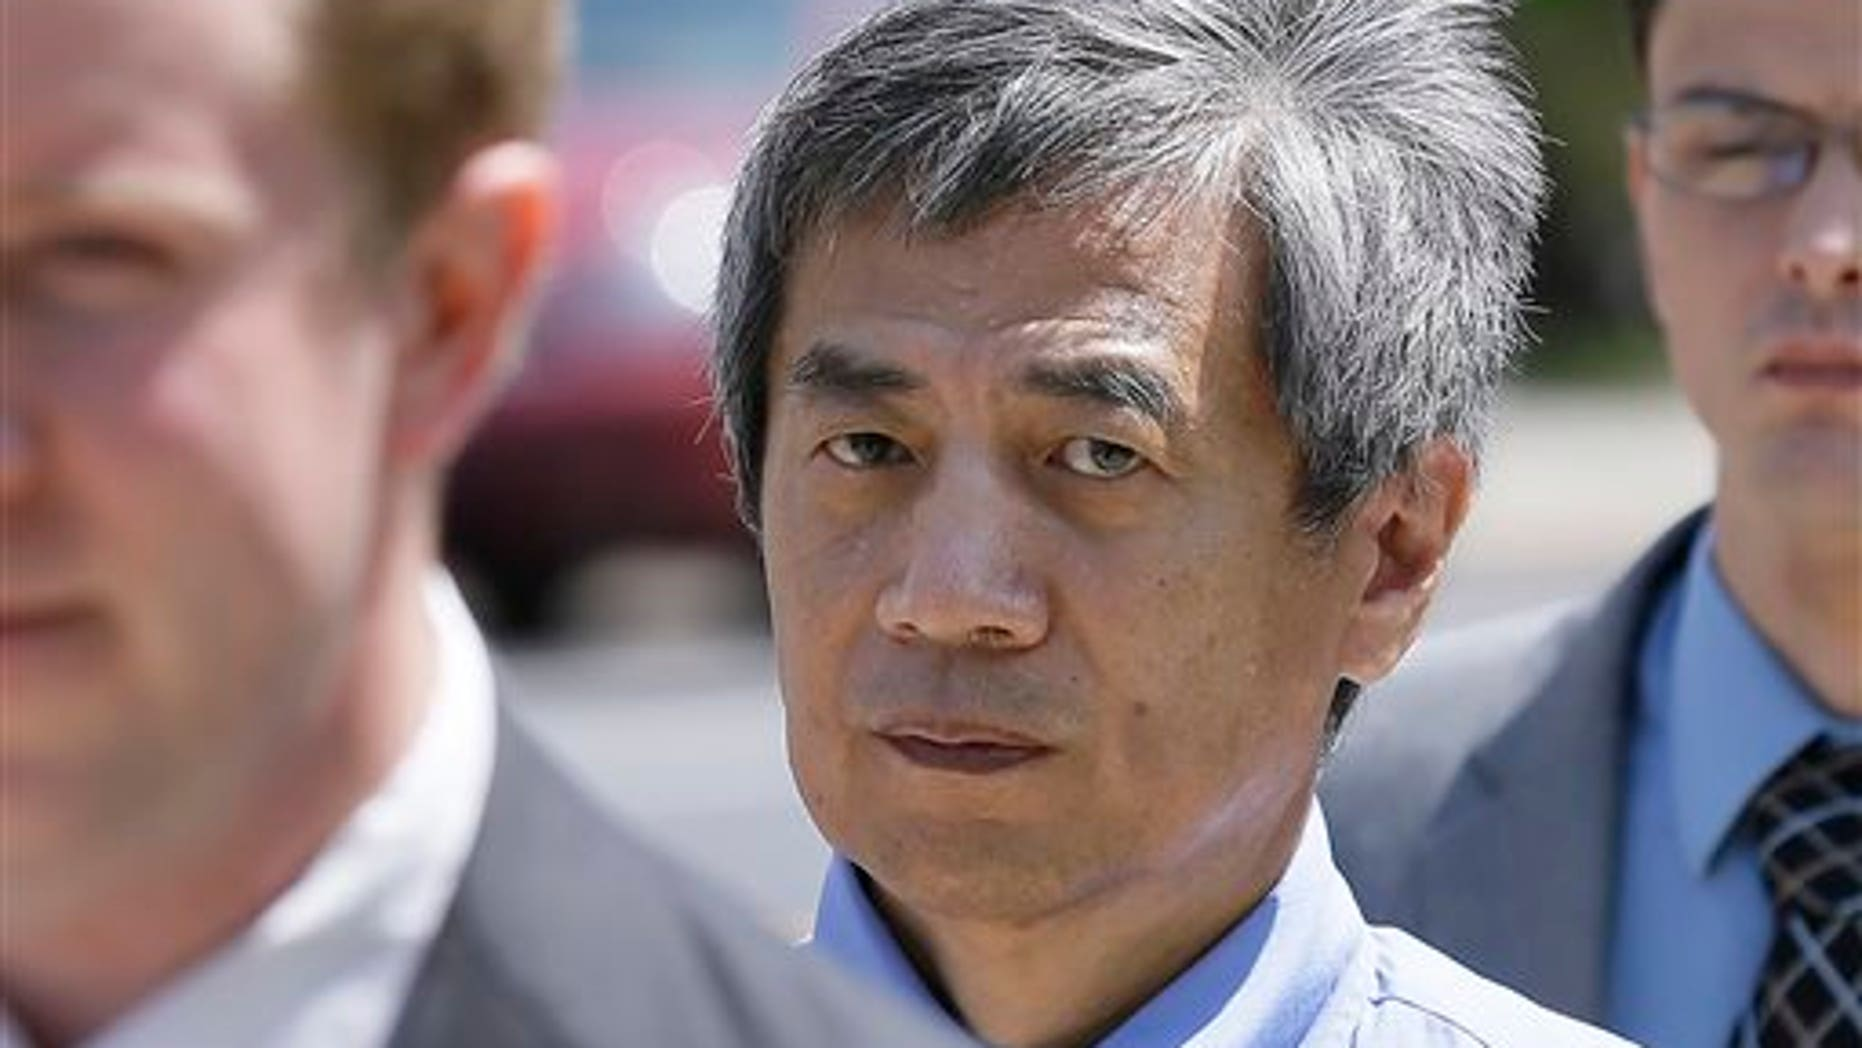 FILE - In this July 1, 2014 file photo, former Iowa State University researcher Dong-Pyou Han leaves the federal courthouse in Des Moines, Iowa. (AP Photo/Charlie Neibergall, File)